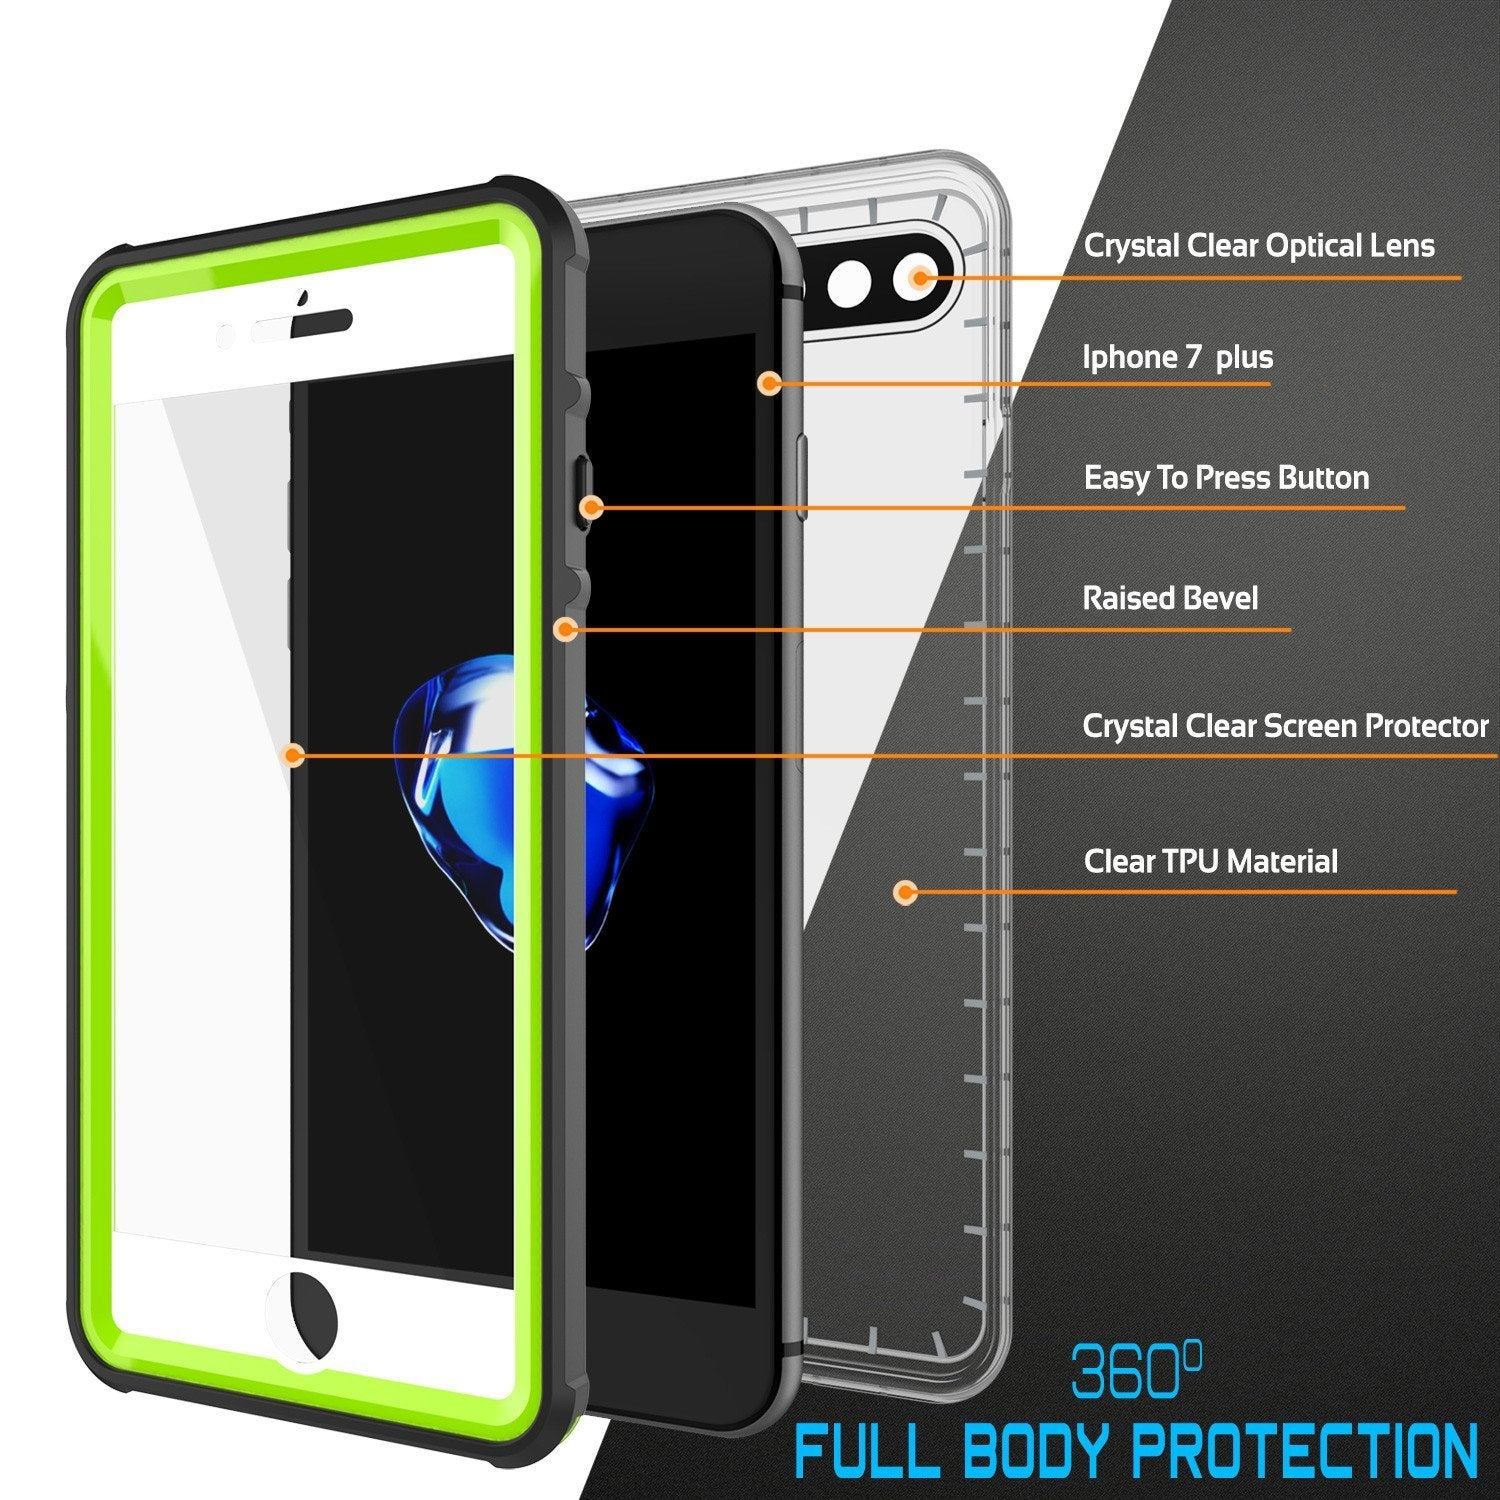 iPhone 8+ Plus Waterproof Case, PUNKcase CRYSTAL Light Green  W/ Attached Screen Protector  | Warranty - PunkCase NZ